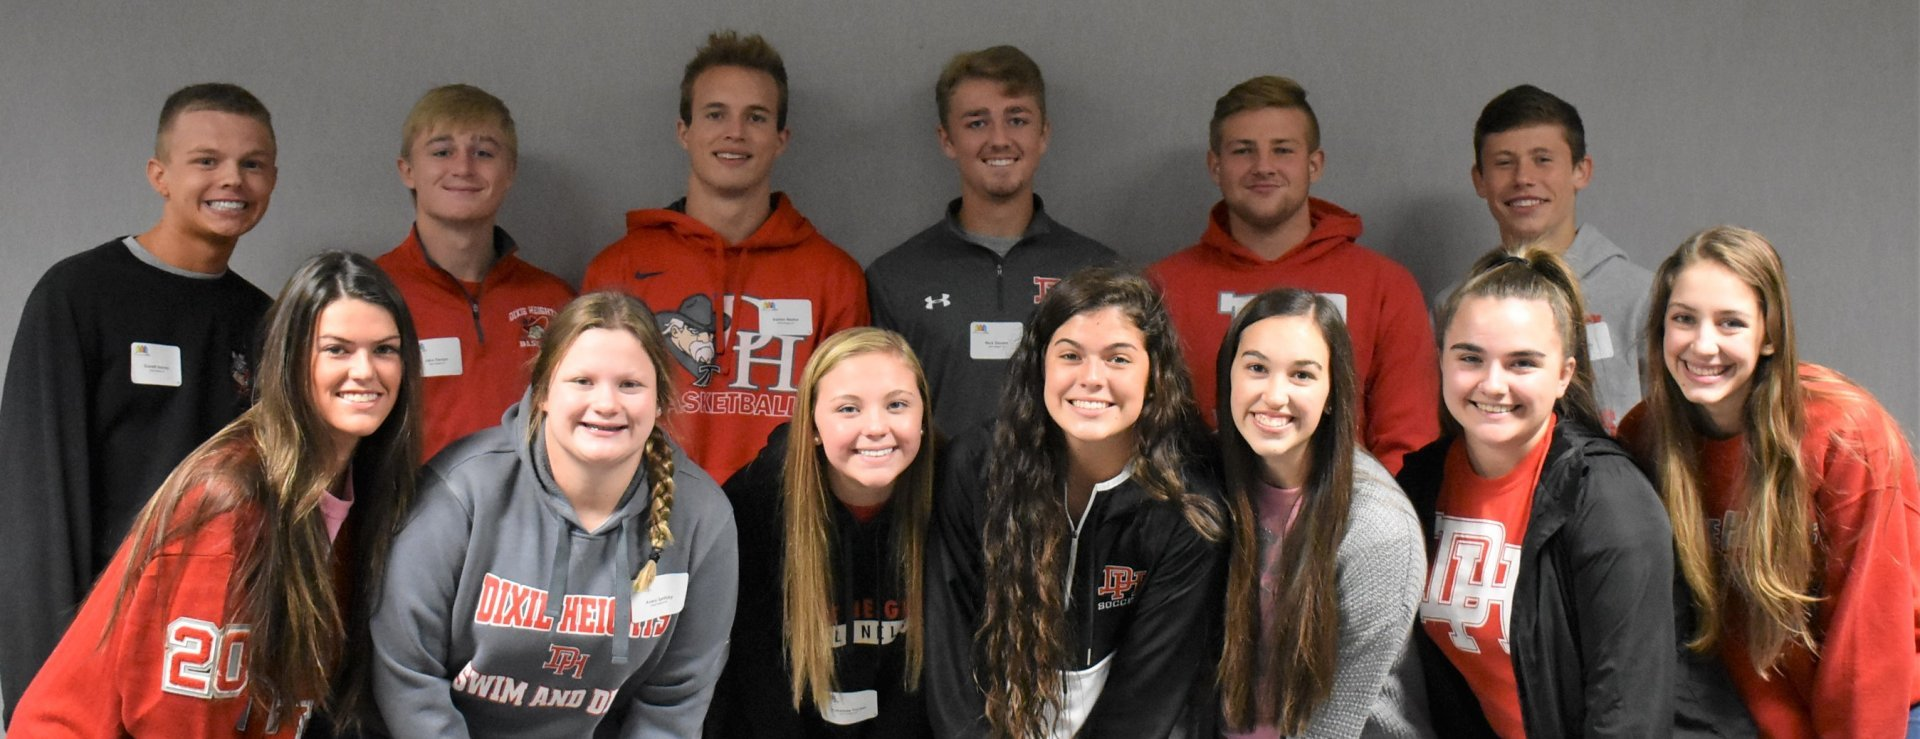 Dixie High Schools students at Red Ribbon Week - Youth Summit 2019